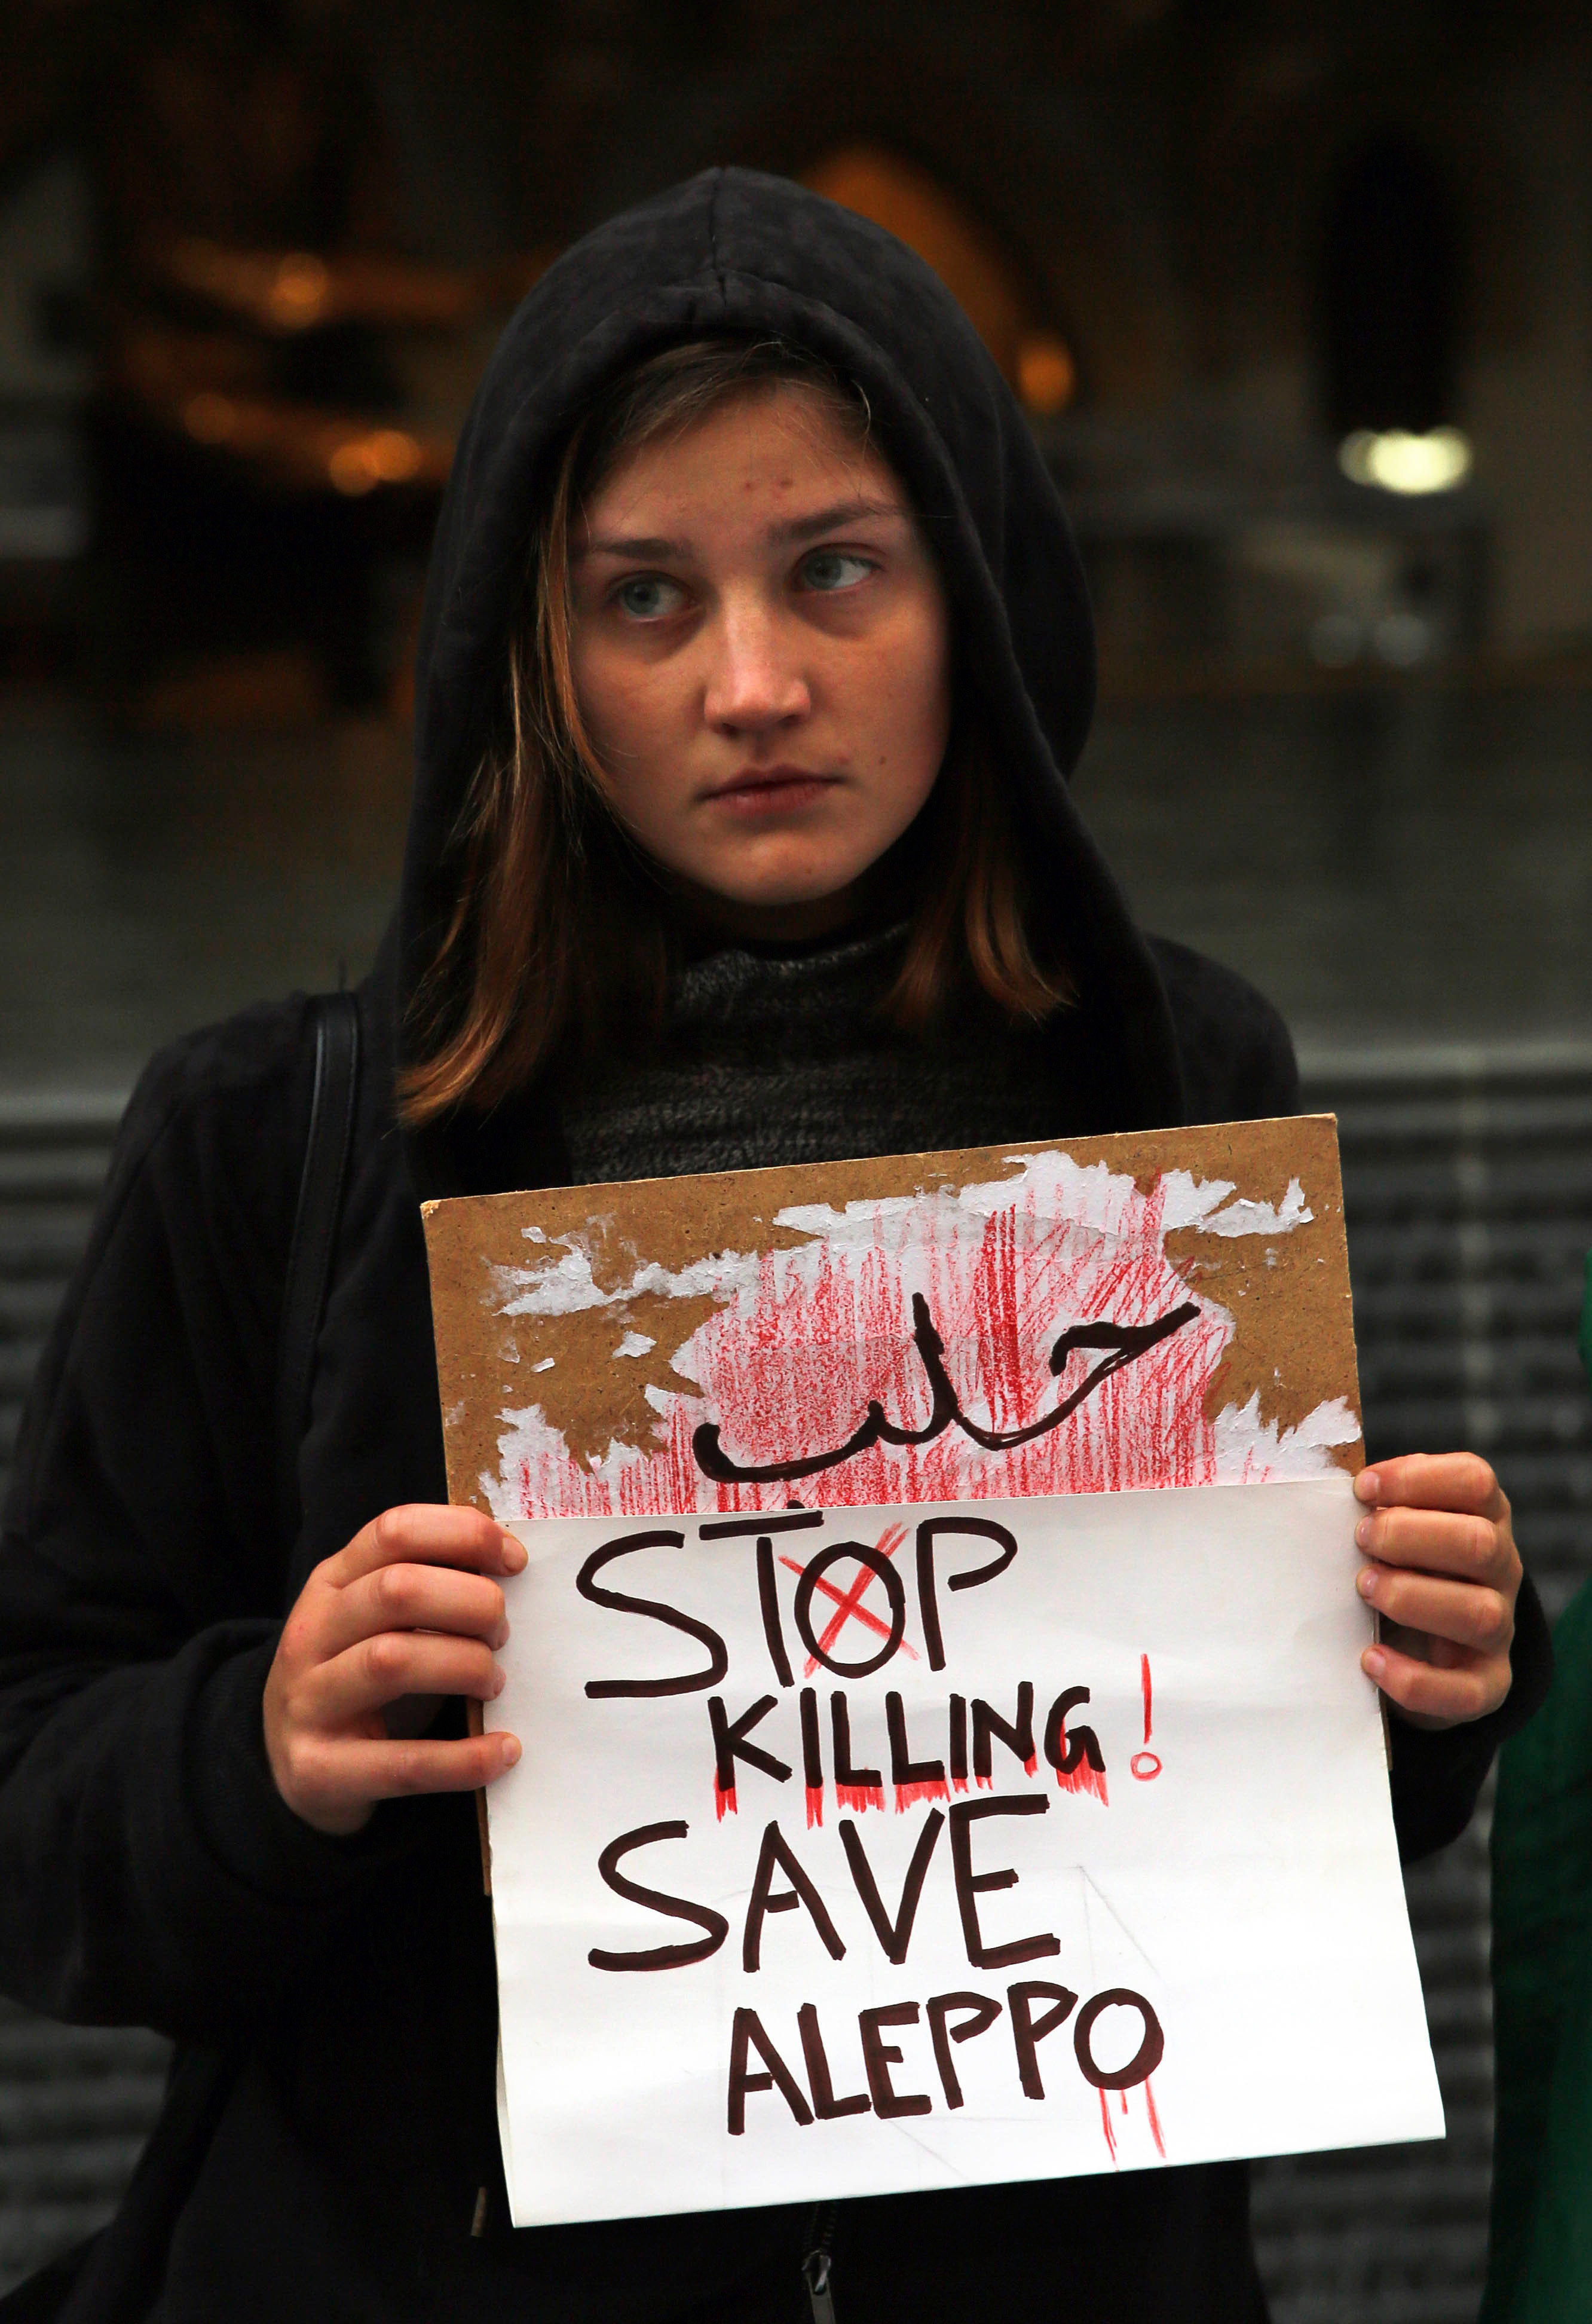 A Lebanese woman holds a placard, during a sit-in to express solidarity with residents of the Syrian city of Aleppo, in downtown Beirut, Lebanon, Tuesday, Dec. 13, 2016. The UN Security Council has scheduled an emergency meeting on the attacks in eastern Aleppo, where Syrian government forces appear poised to take the last rebel holdouts. (AP Photo/Bilal Hussein)